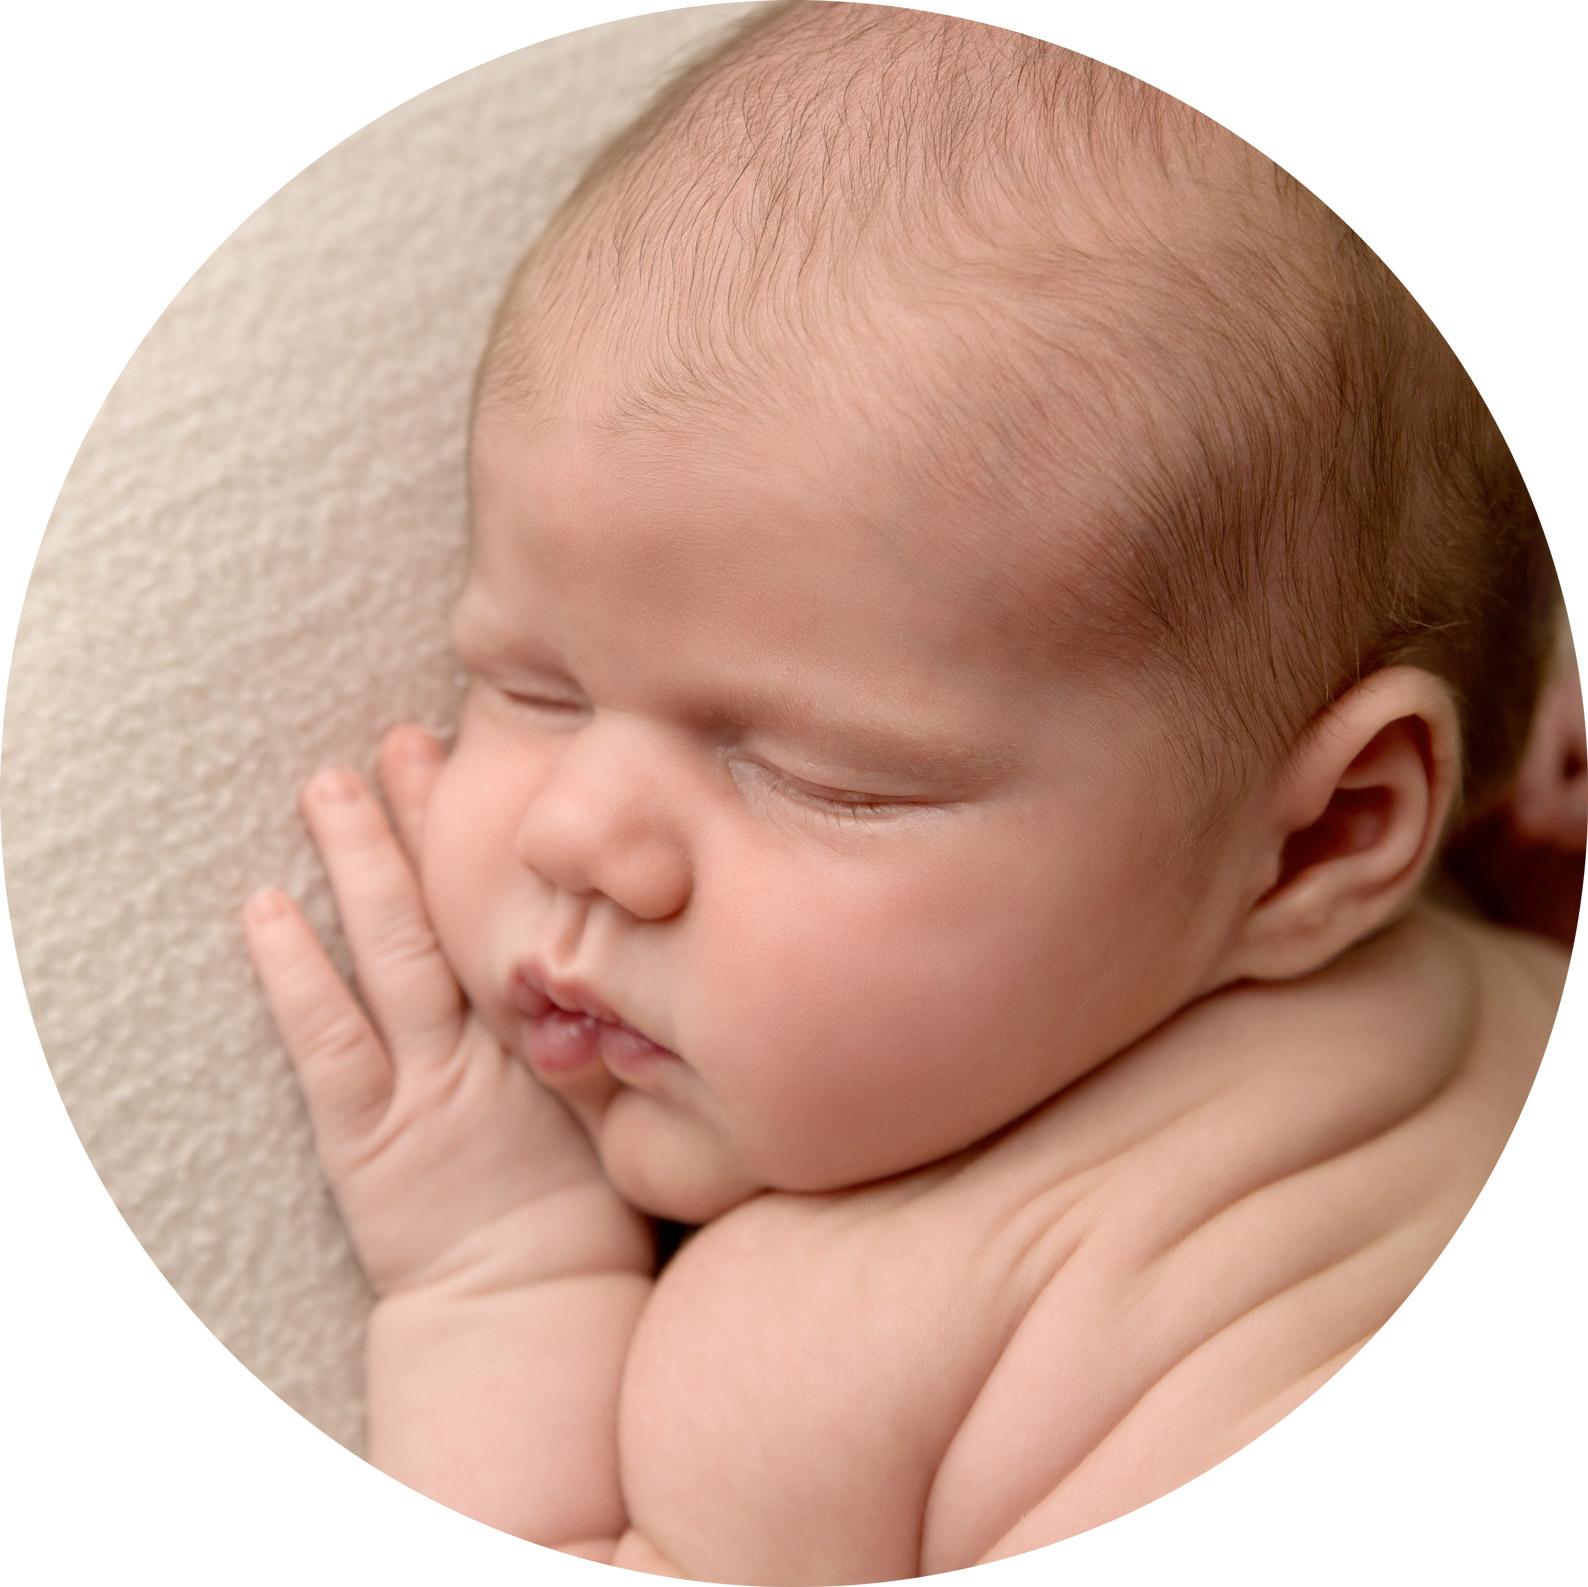 cute-baby-photos-hemel-hempstead-hertfordshire-studio-asleep-cute.jpg